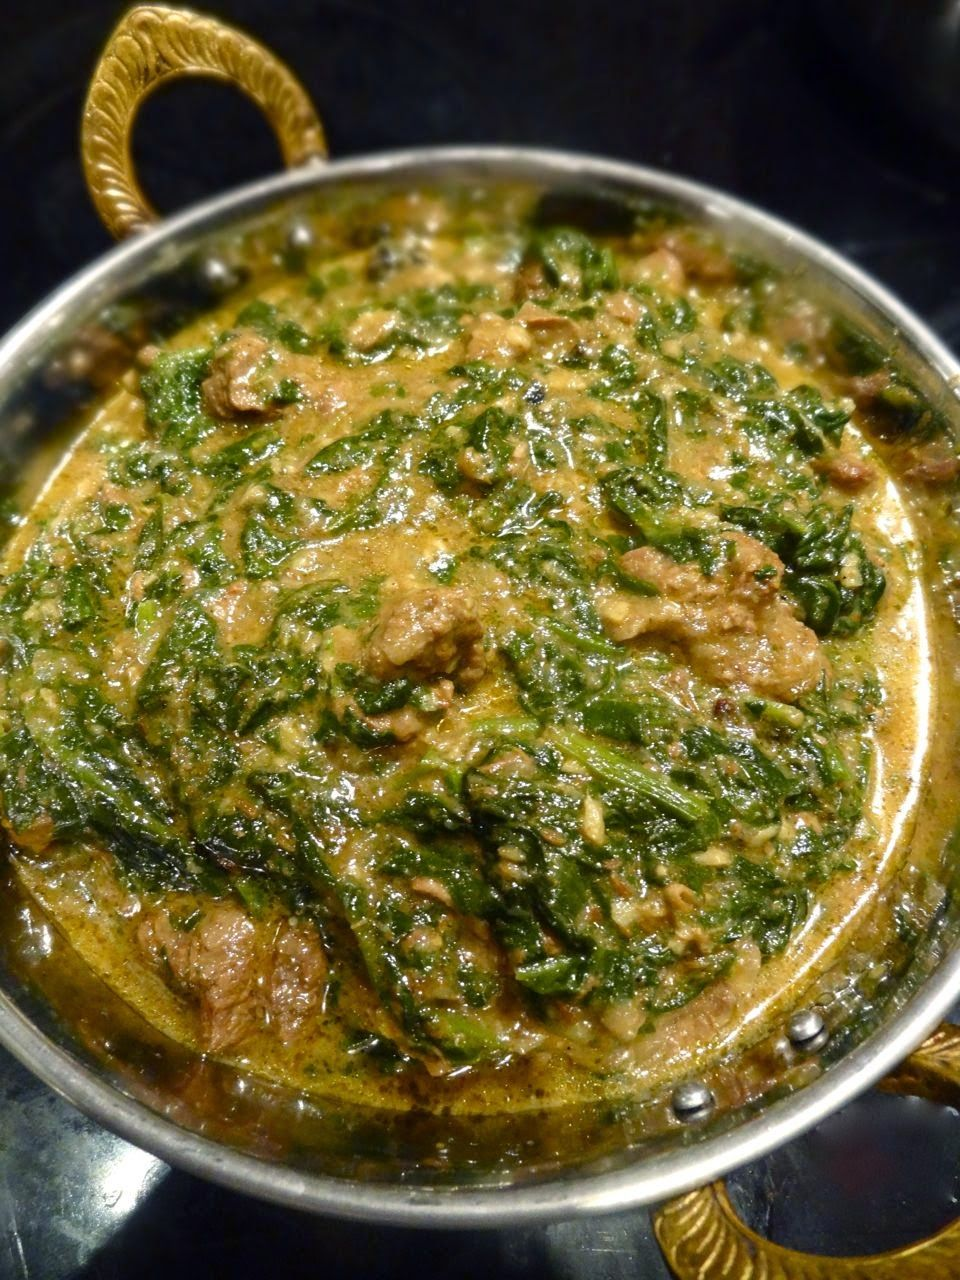 Saag Gosht Is A Tender And Delicious Lamb And Spinach Curry